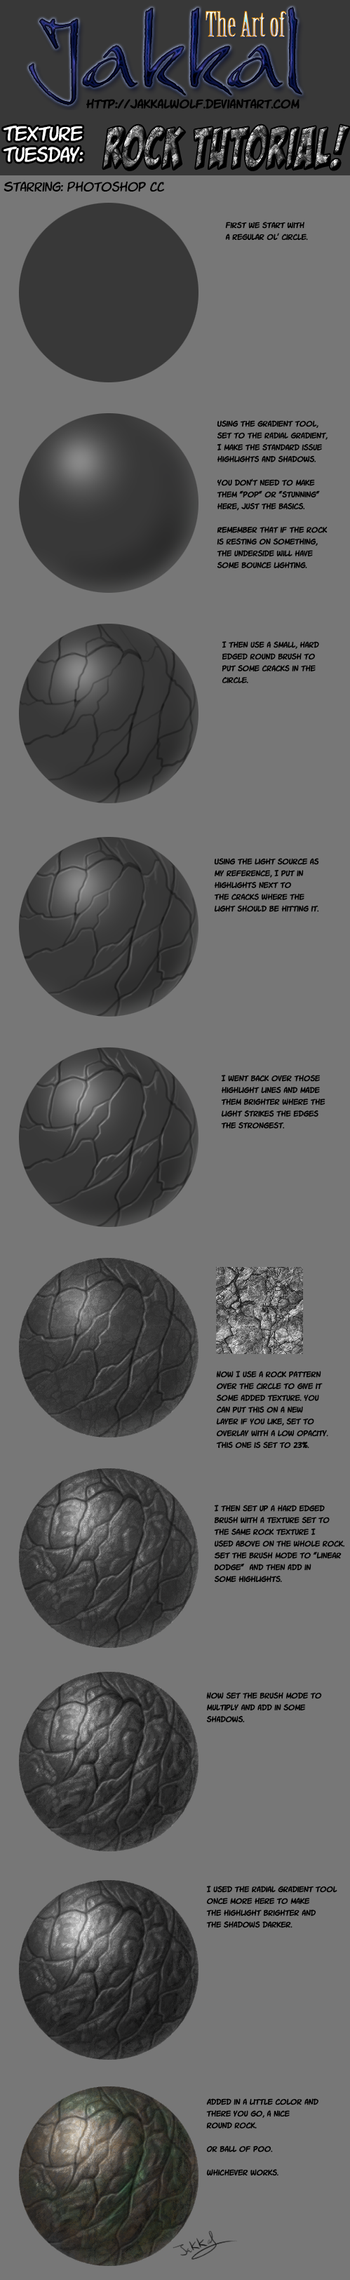 Texture tuesday rock tutorial by jakkalwolf on deviantart texture tuesday rock tutorial by jakkalwolf baditri Images